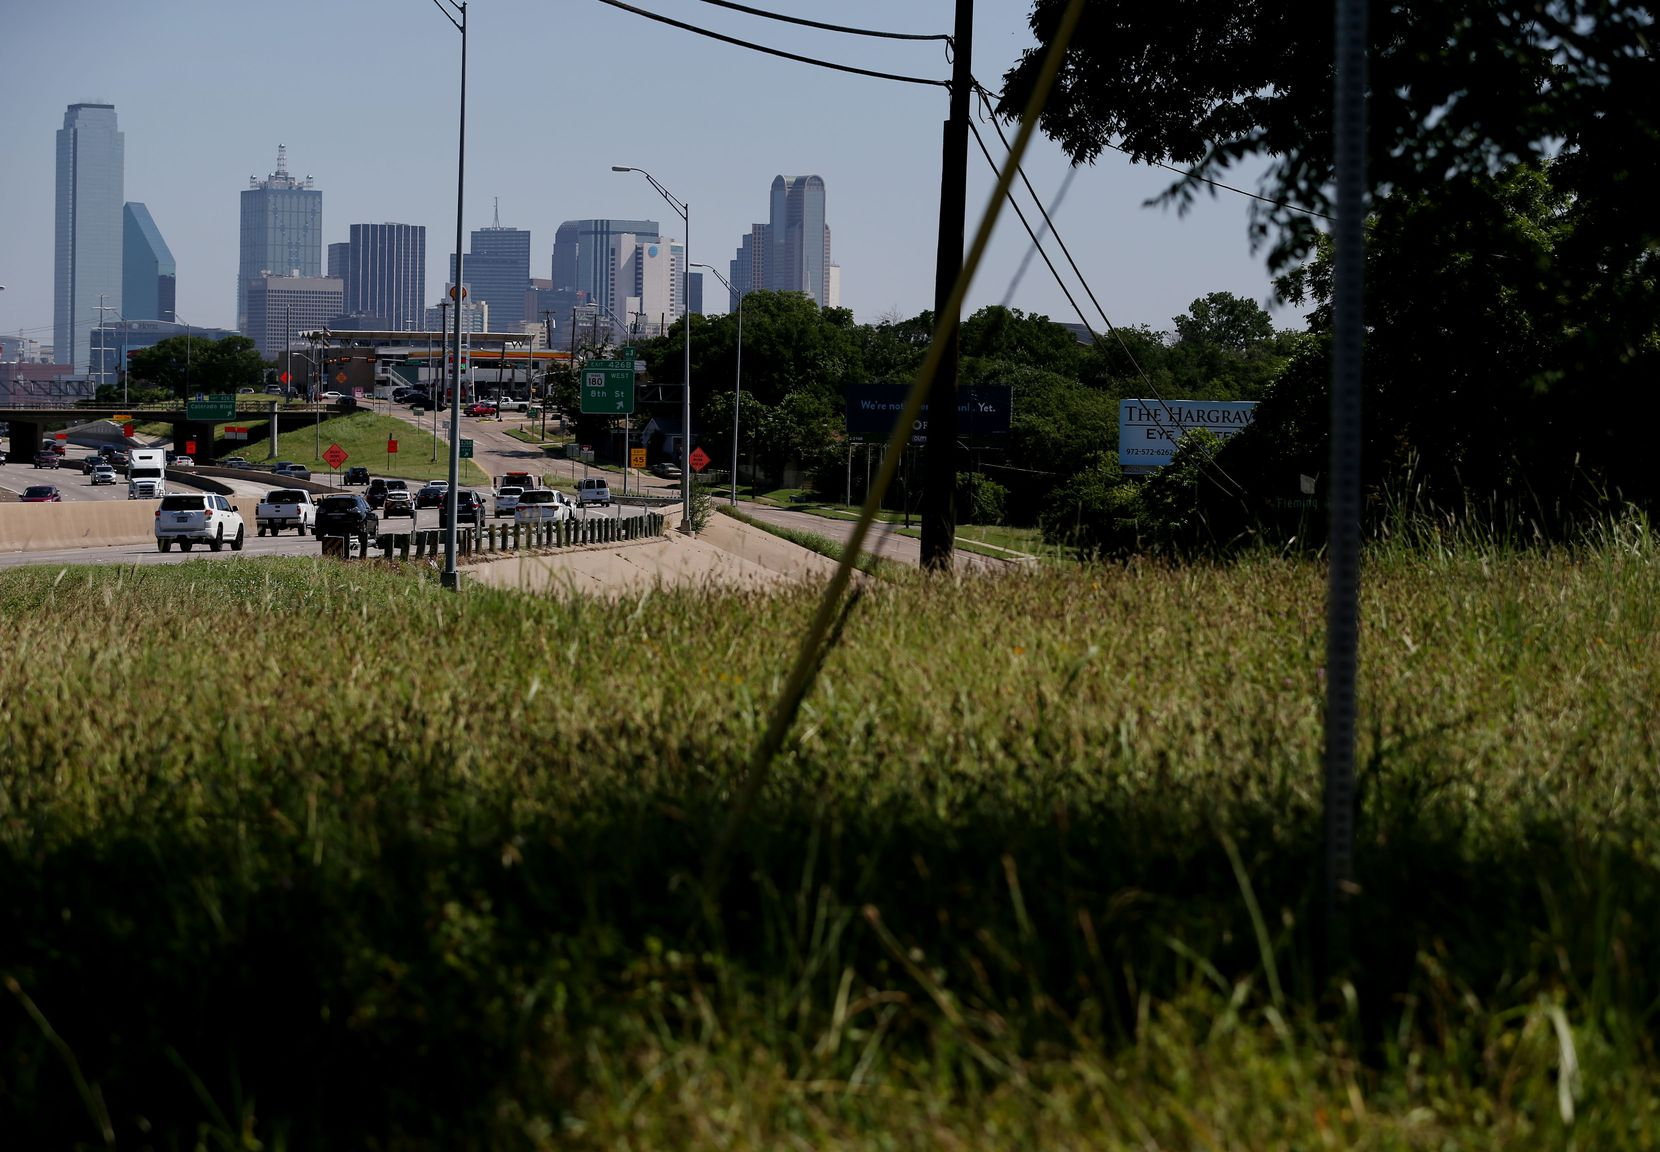 The view of downtown Dallas, near the corner of  E. 11th Street and Fleming Avenue on the east side of Interstate 35 in the Tenth Street Historic District, on June 22, 2016.